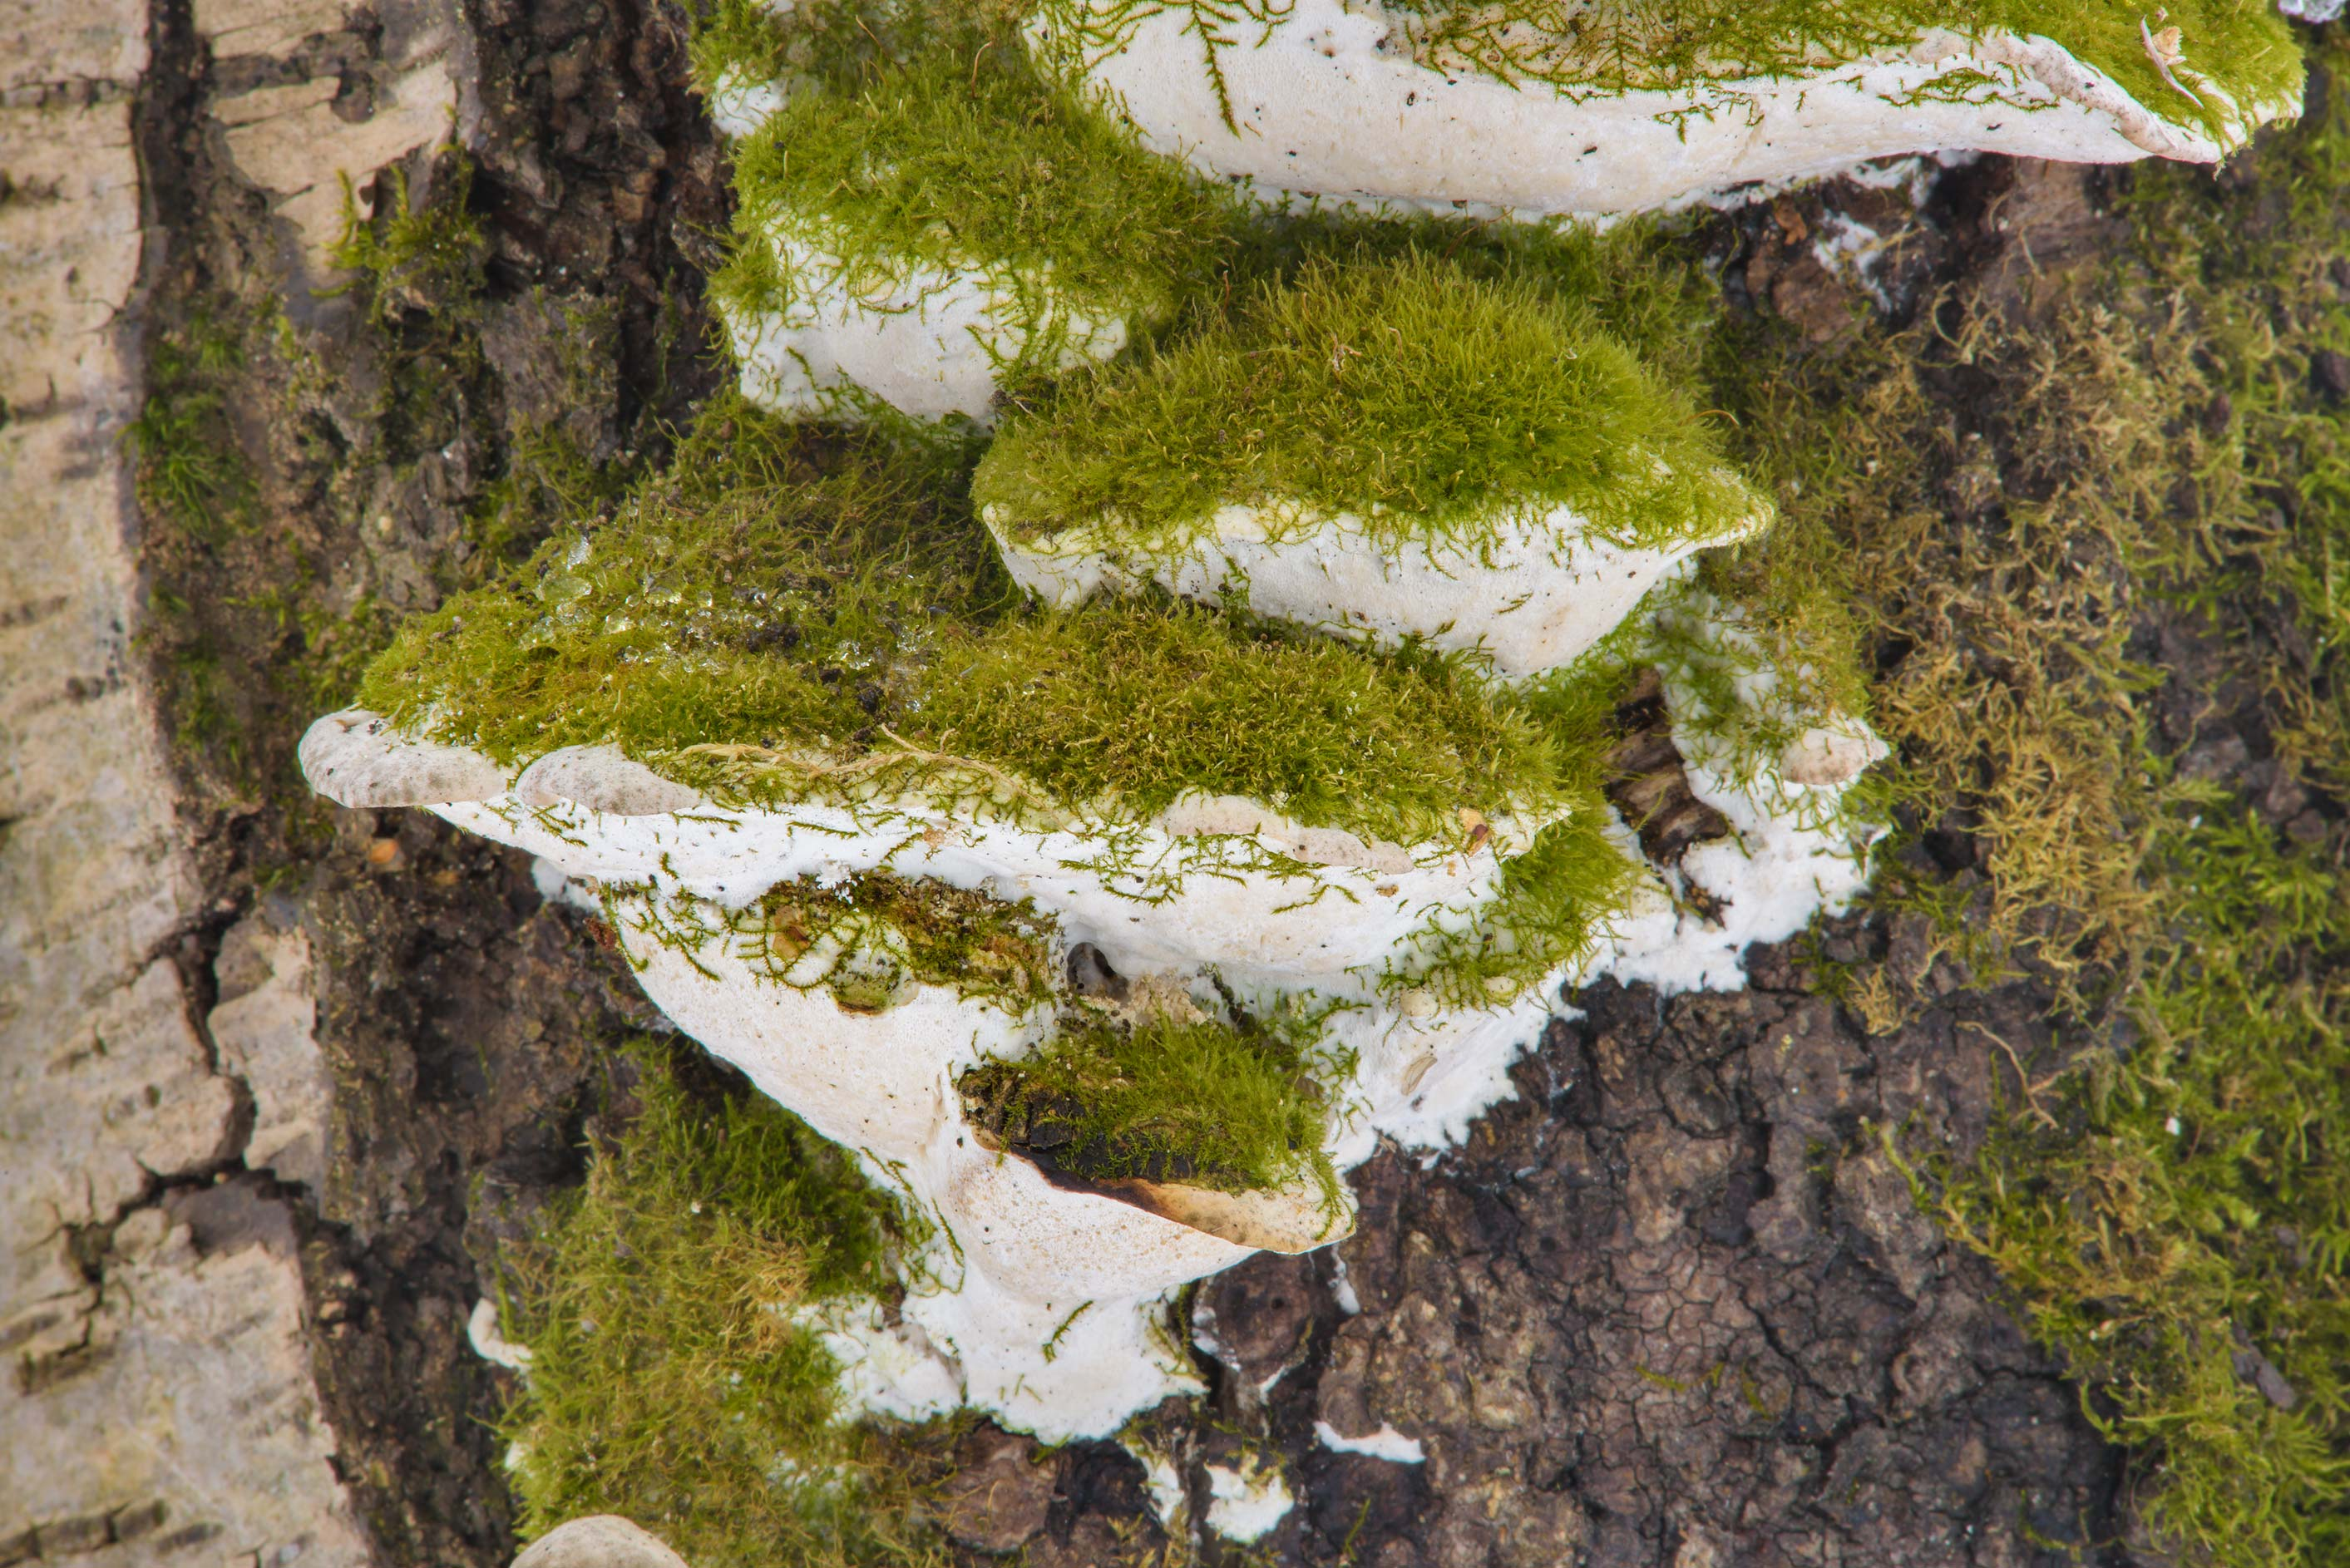 Green moss on a polypore mushrooms Oxyporus...in Udelny Park. St.Petersburg, Russia